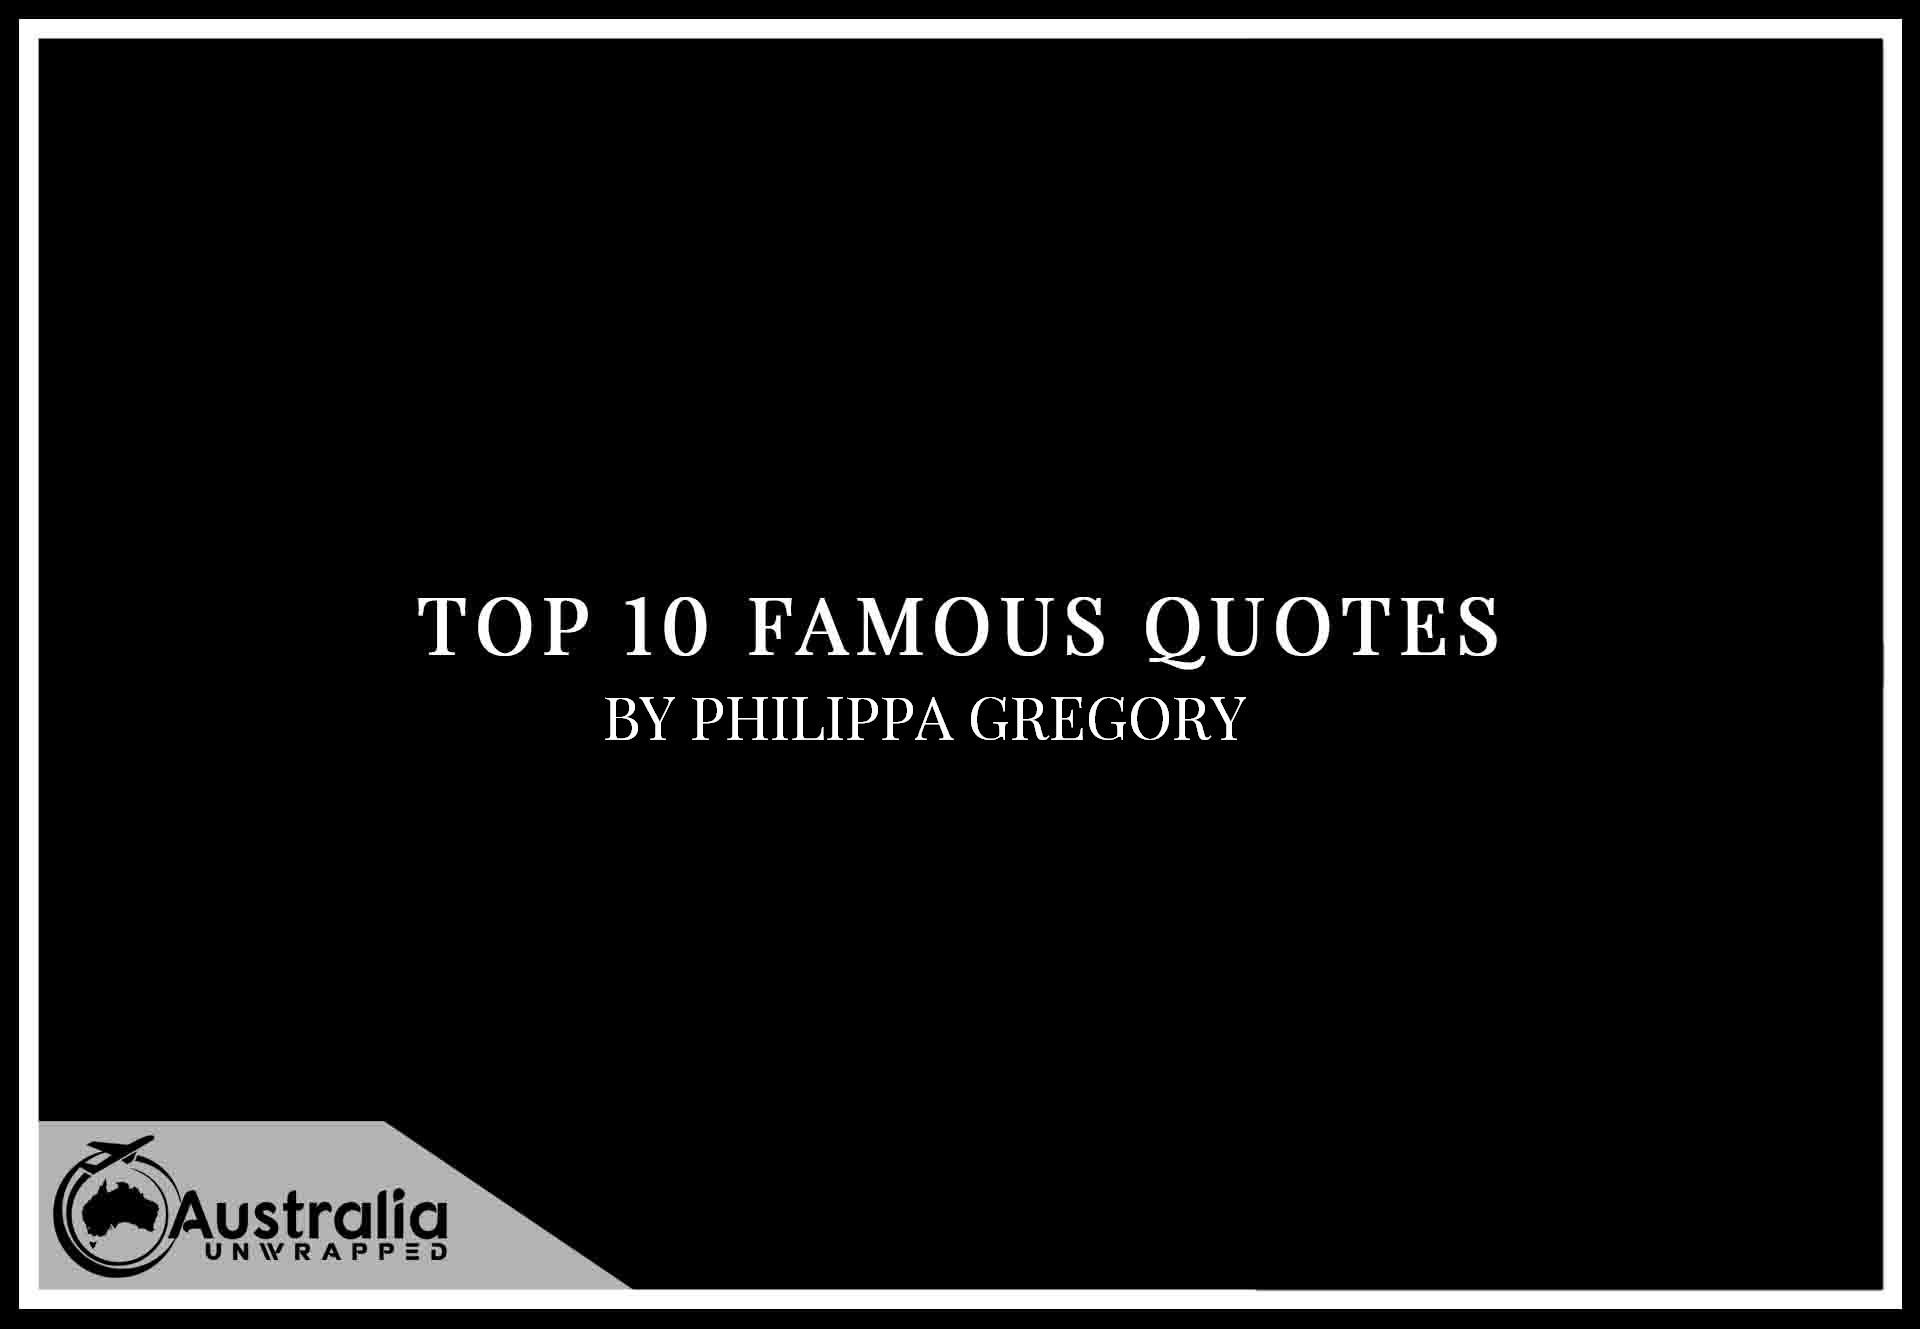 Top 10 Famous Quotes by Author Philippa Gregory